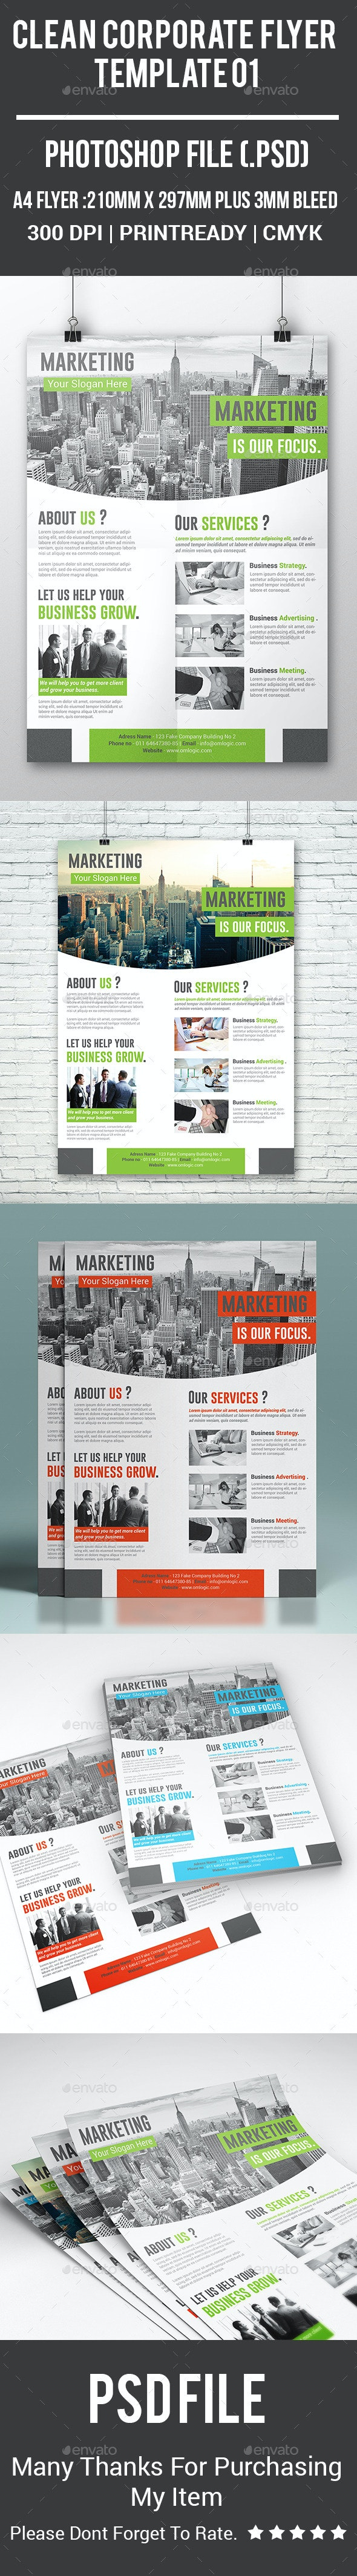 Clean Corporate Flyer Template 01 - Corporate Flyers